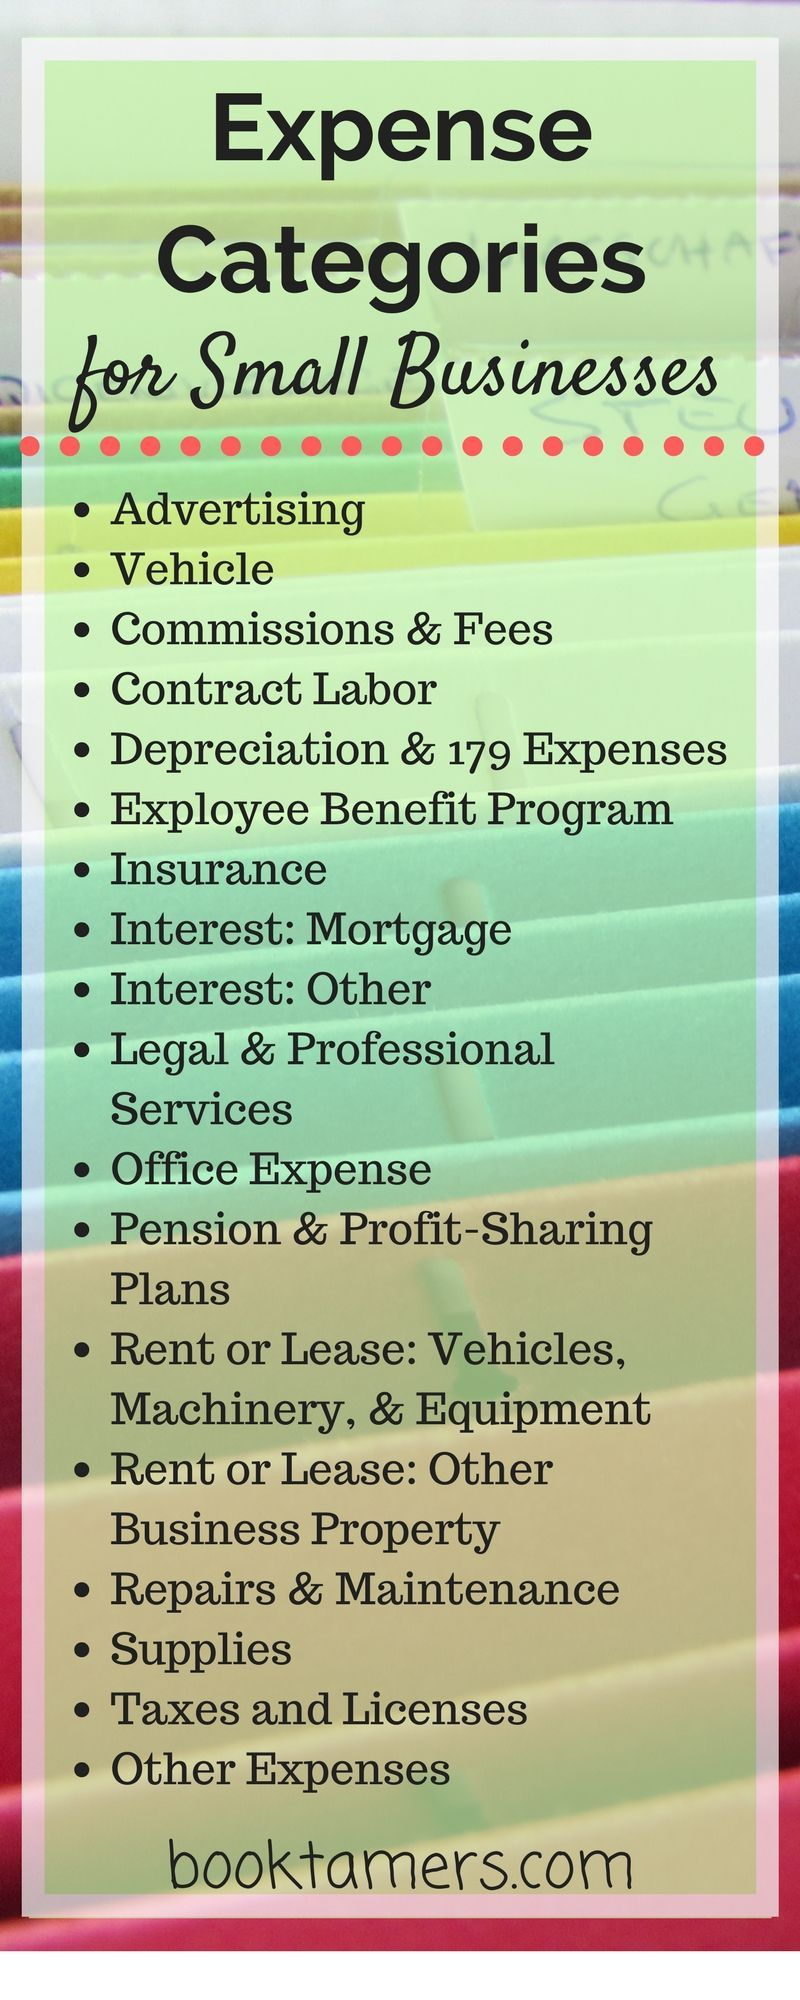 Super Helpful List Of Business Expense Categories For Small